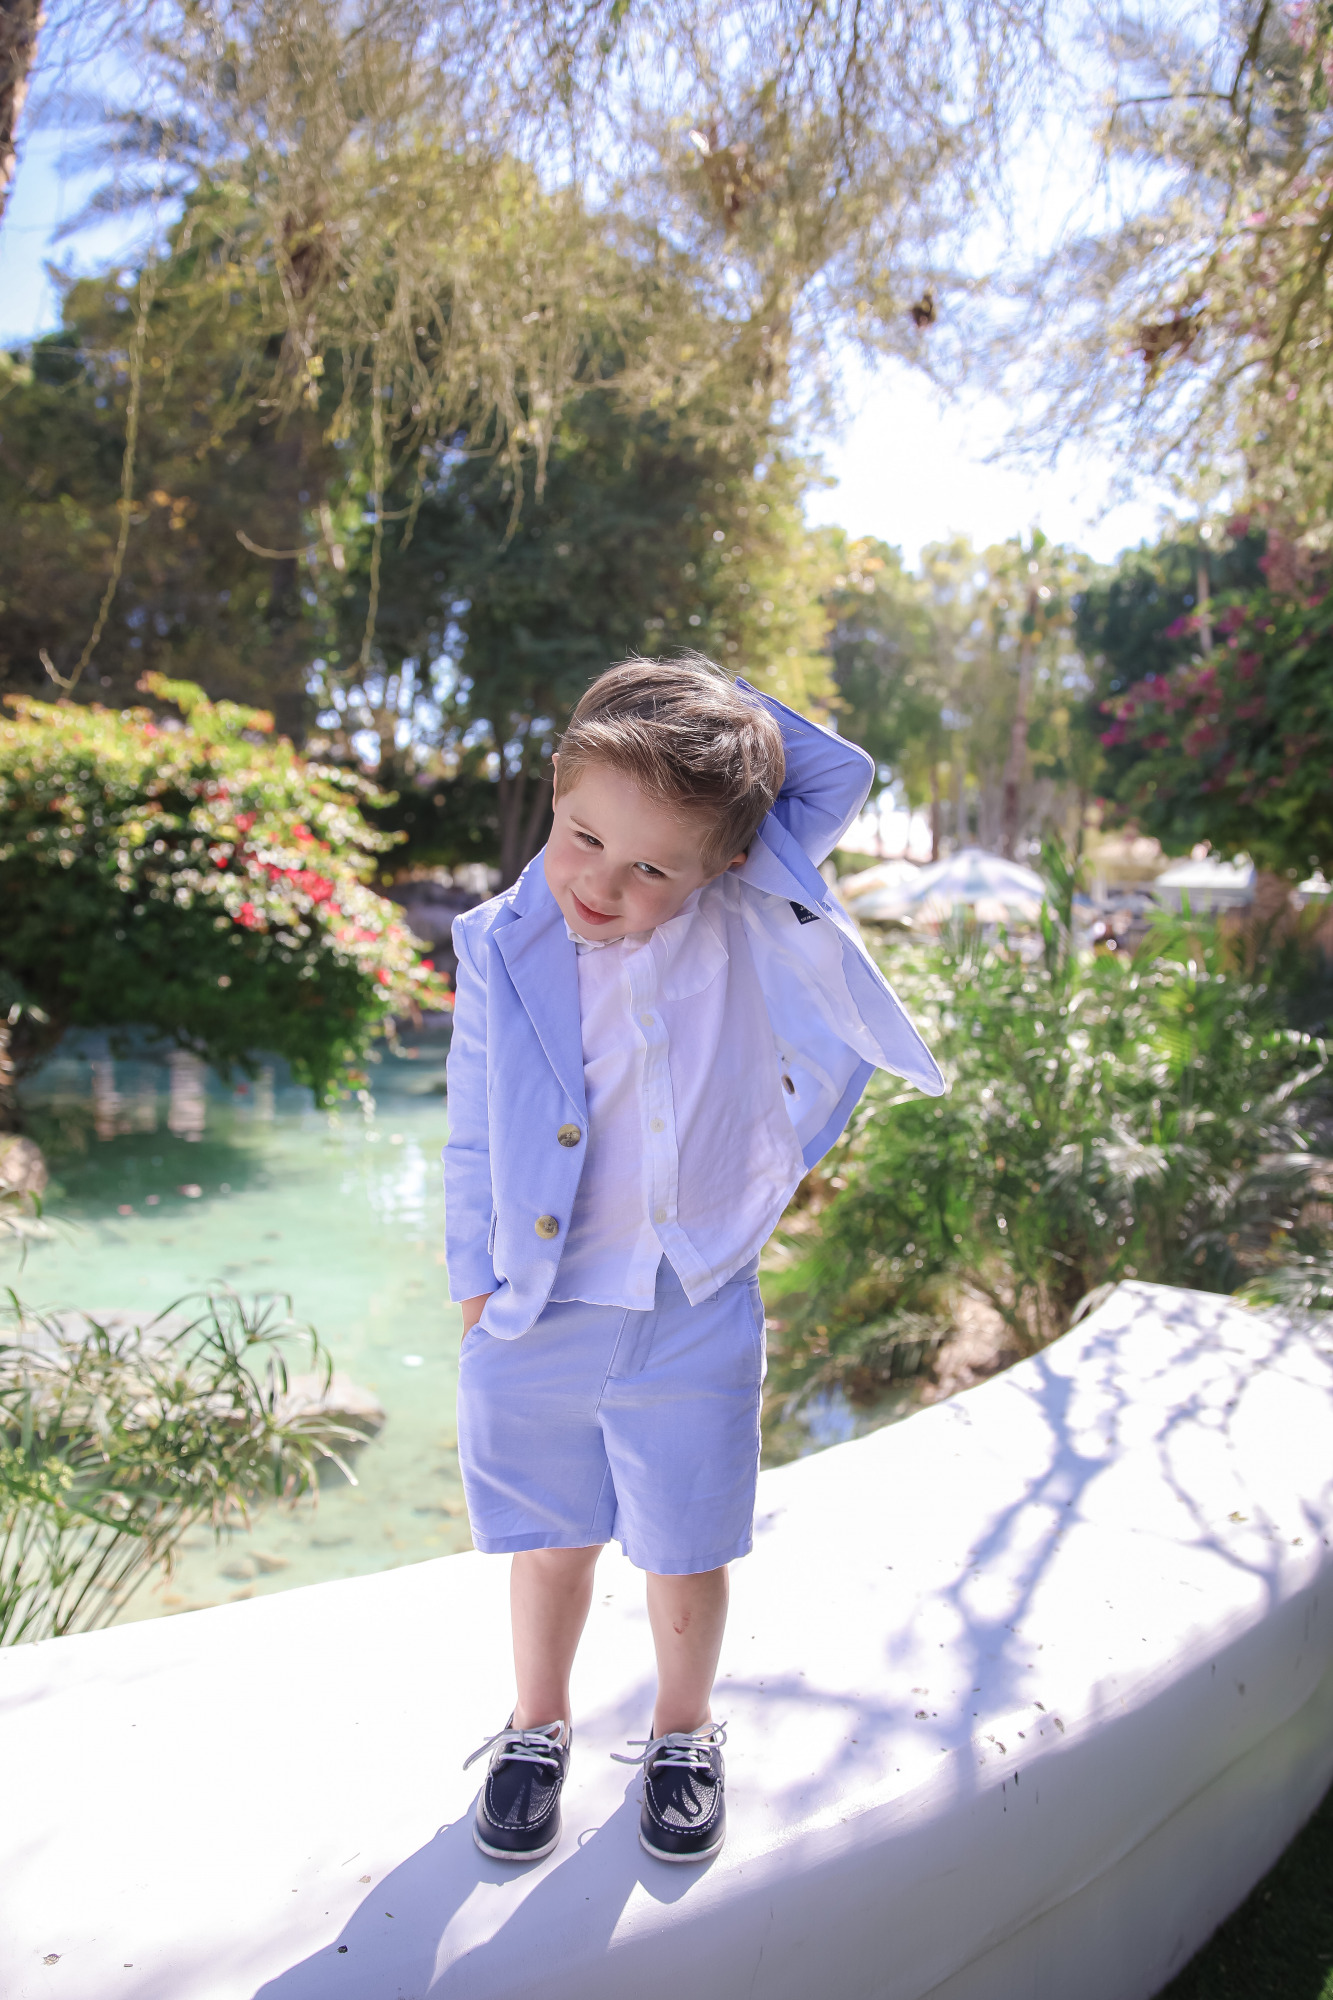 janie and jack easter kids outfits 2021, kids easter outfit ideas toddler, toddler boy seersucker suit |Spring Outfit Ideas for Kids by popular US fashion blog, The Sweetest Thing: image of a young boy standing outside next to a landscaped pond and wearing a Seersucker Blazer, Seersucker Shorts, White Button-down, and Leather Boat Shoes.